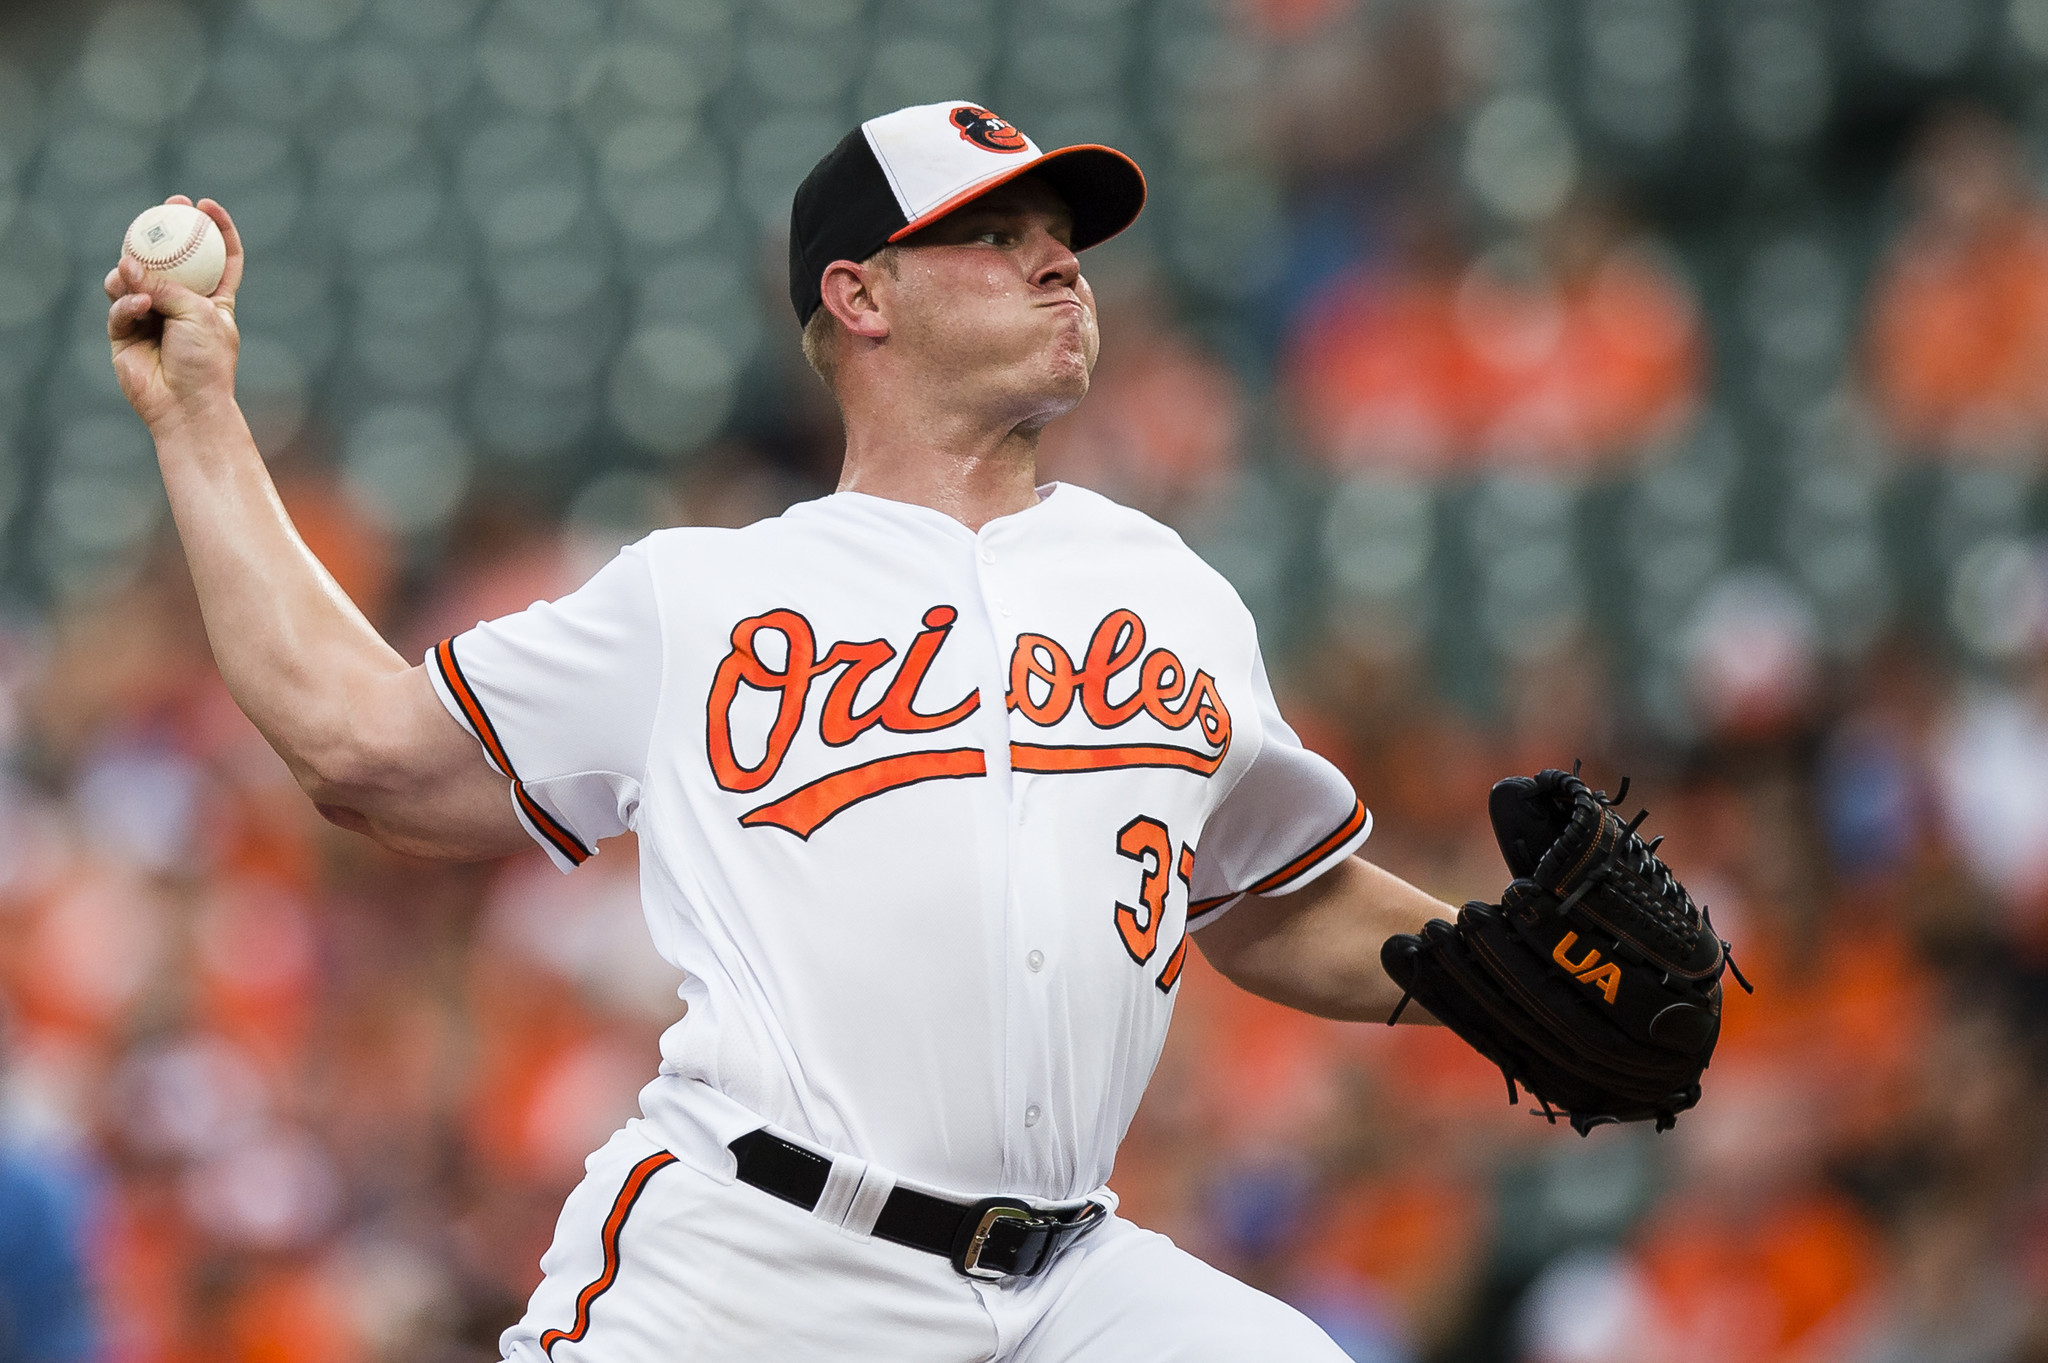 Bundy pitches a gem in 7-2 win as Orioles take first two games from Royals - Baltimore Sun